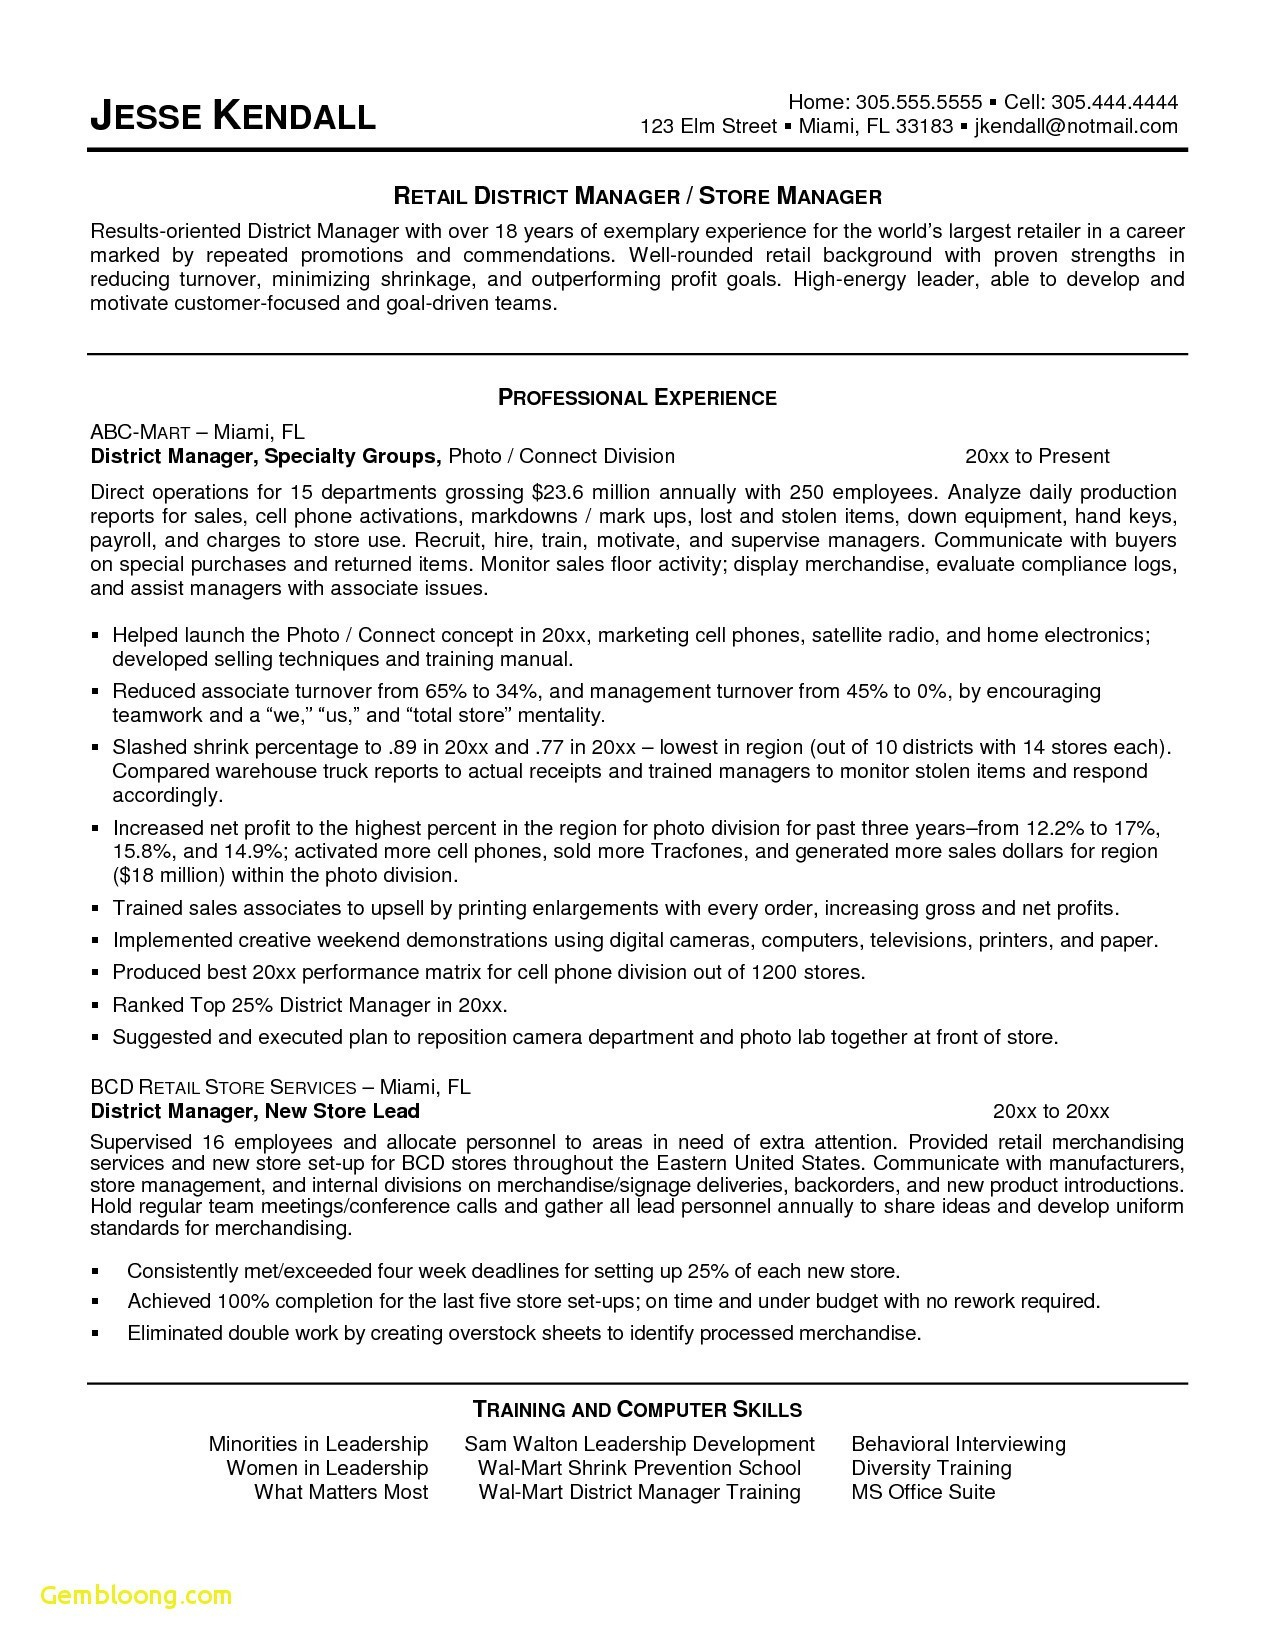 Restaurants Manager Resume - Customer Service Manager Resume Unique Fresh Grapher Resume Sample